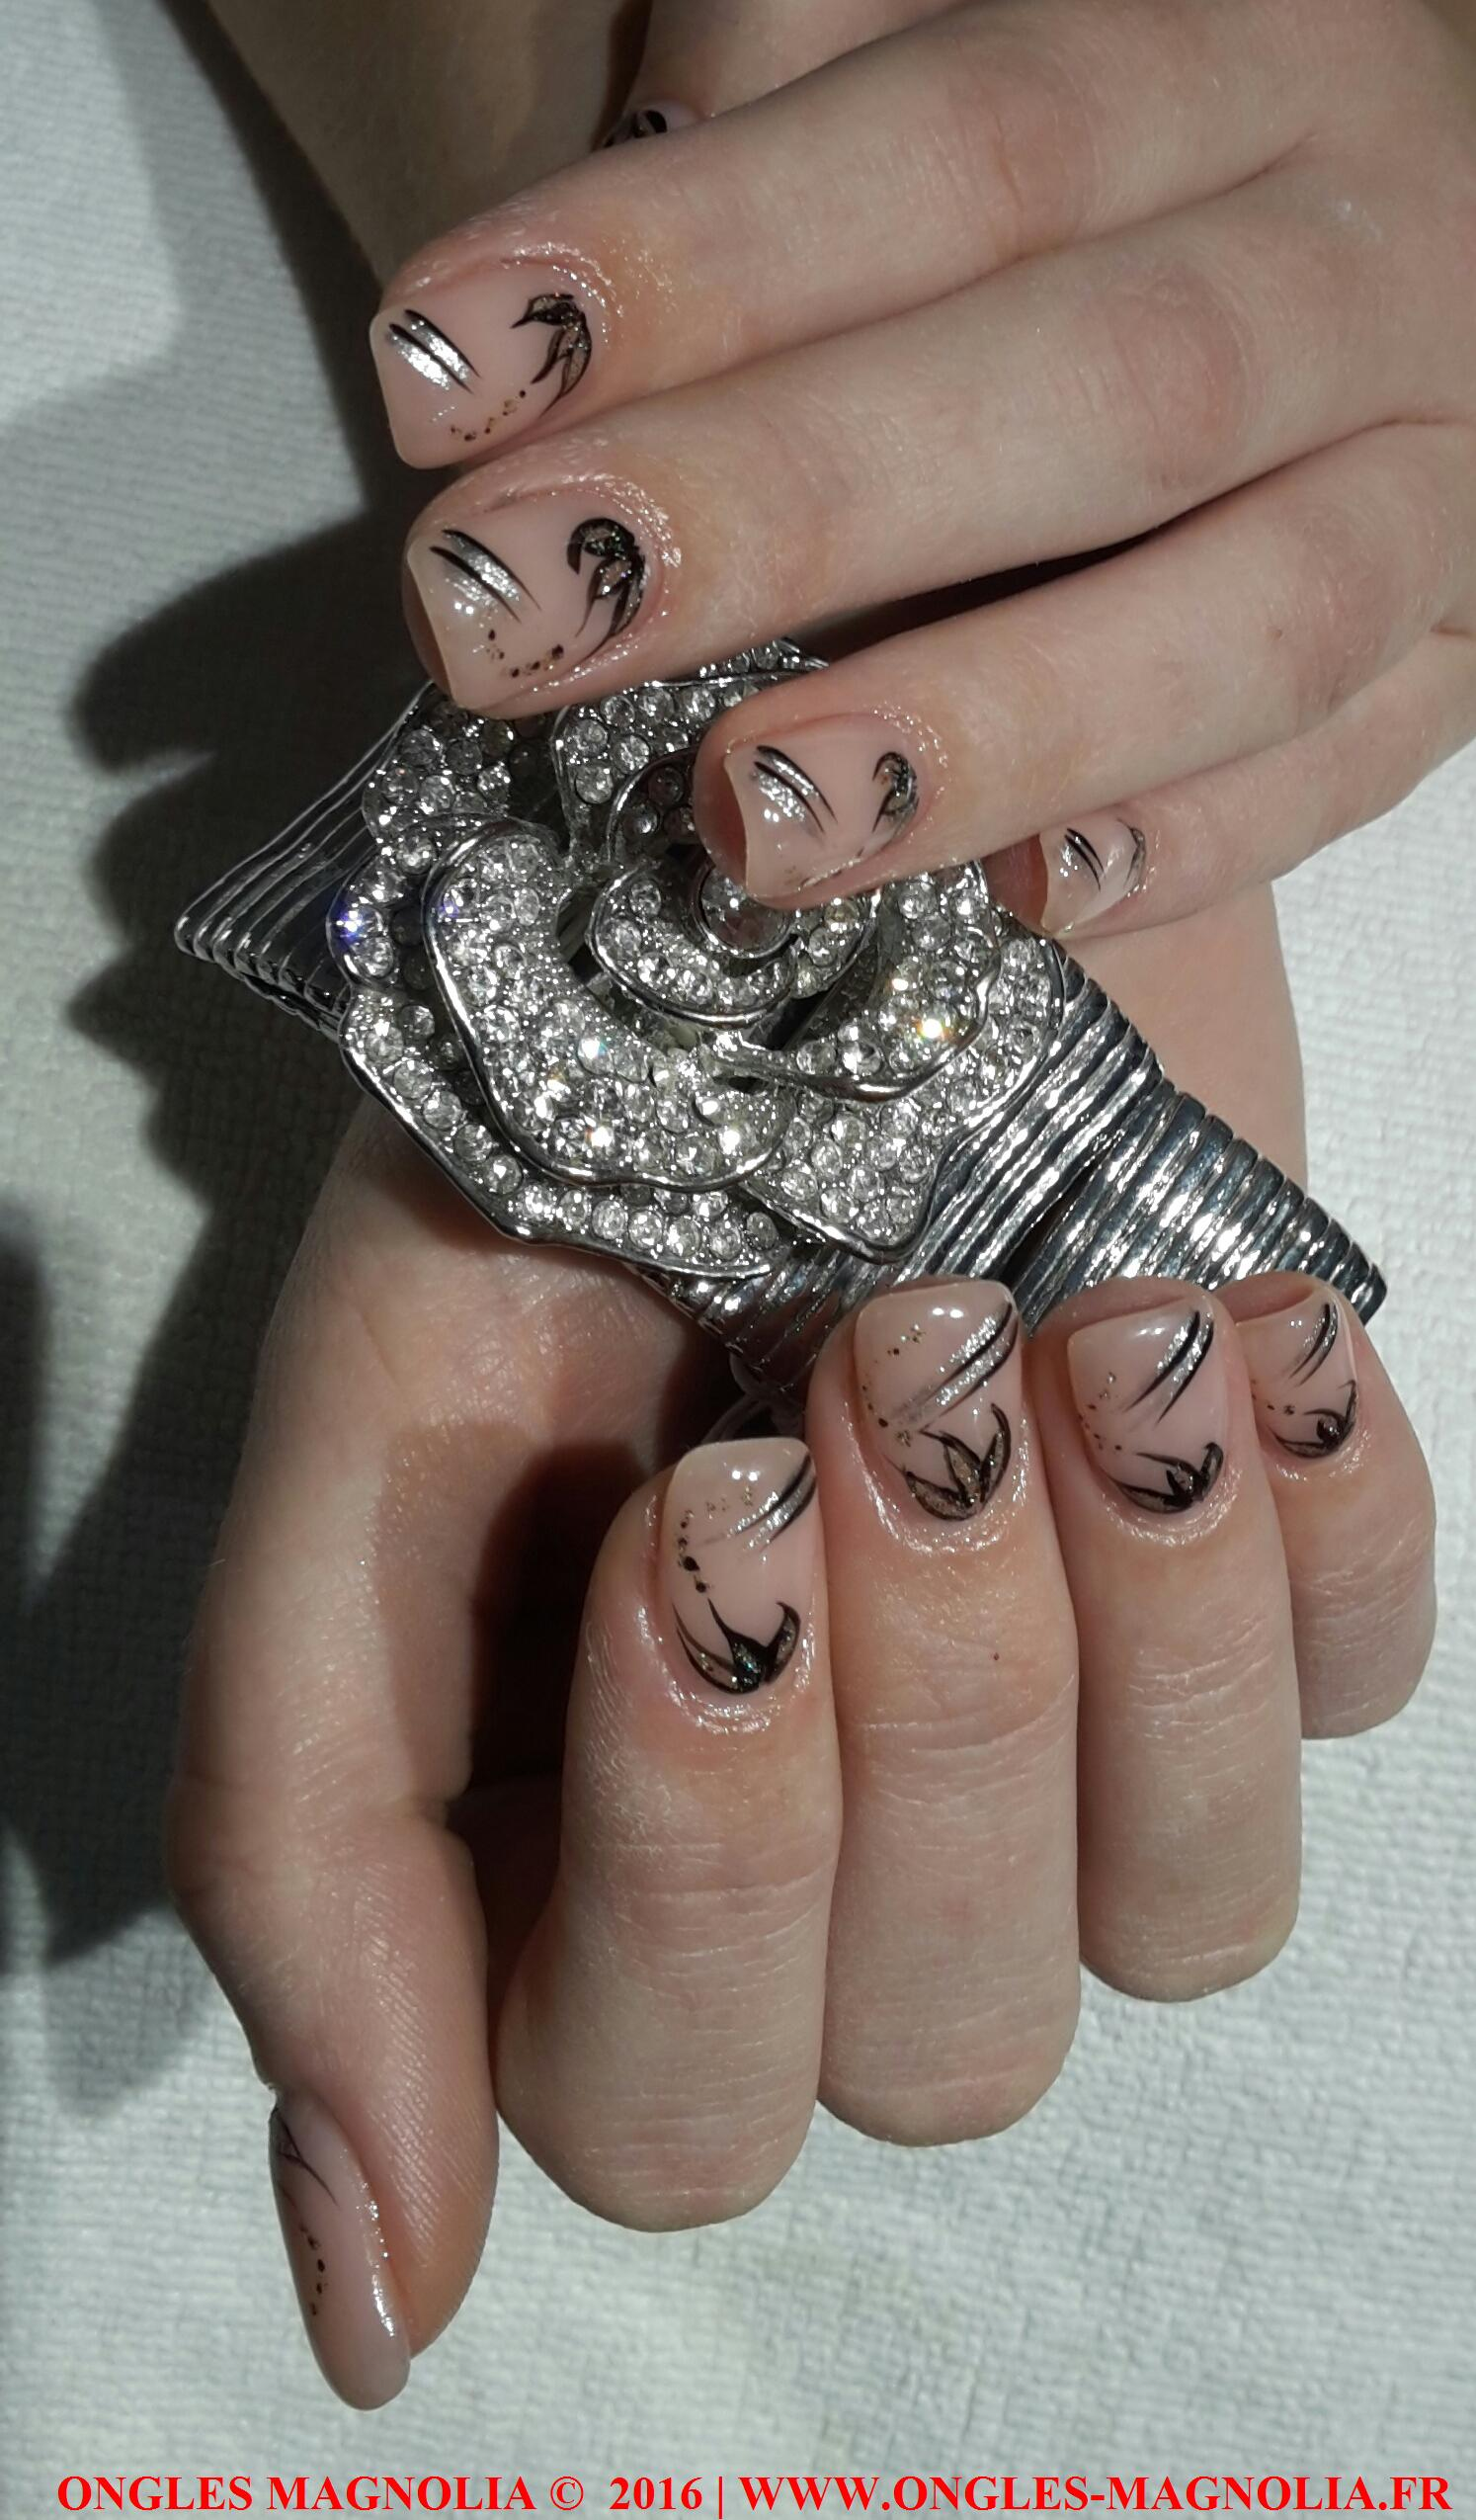 Pose-ongles-nail-art-neuville-sur-saone-lyon-ongles magnolia 172016